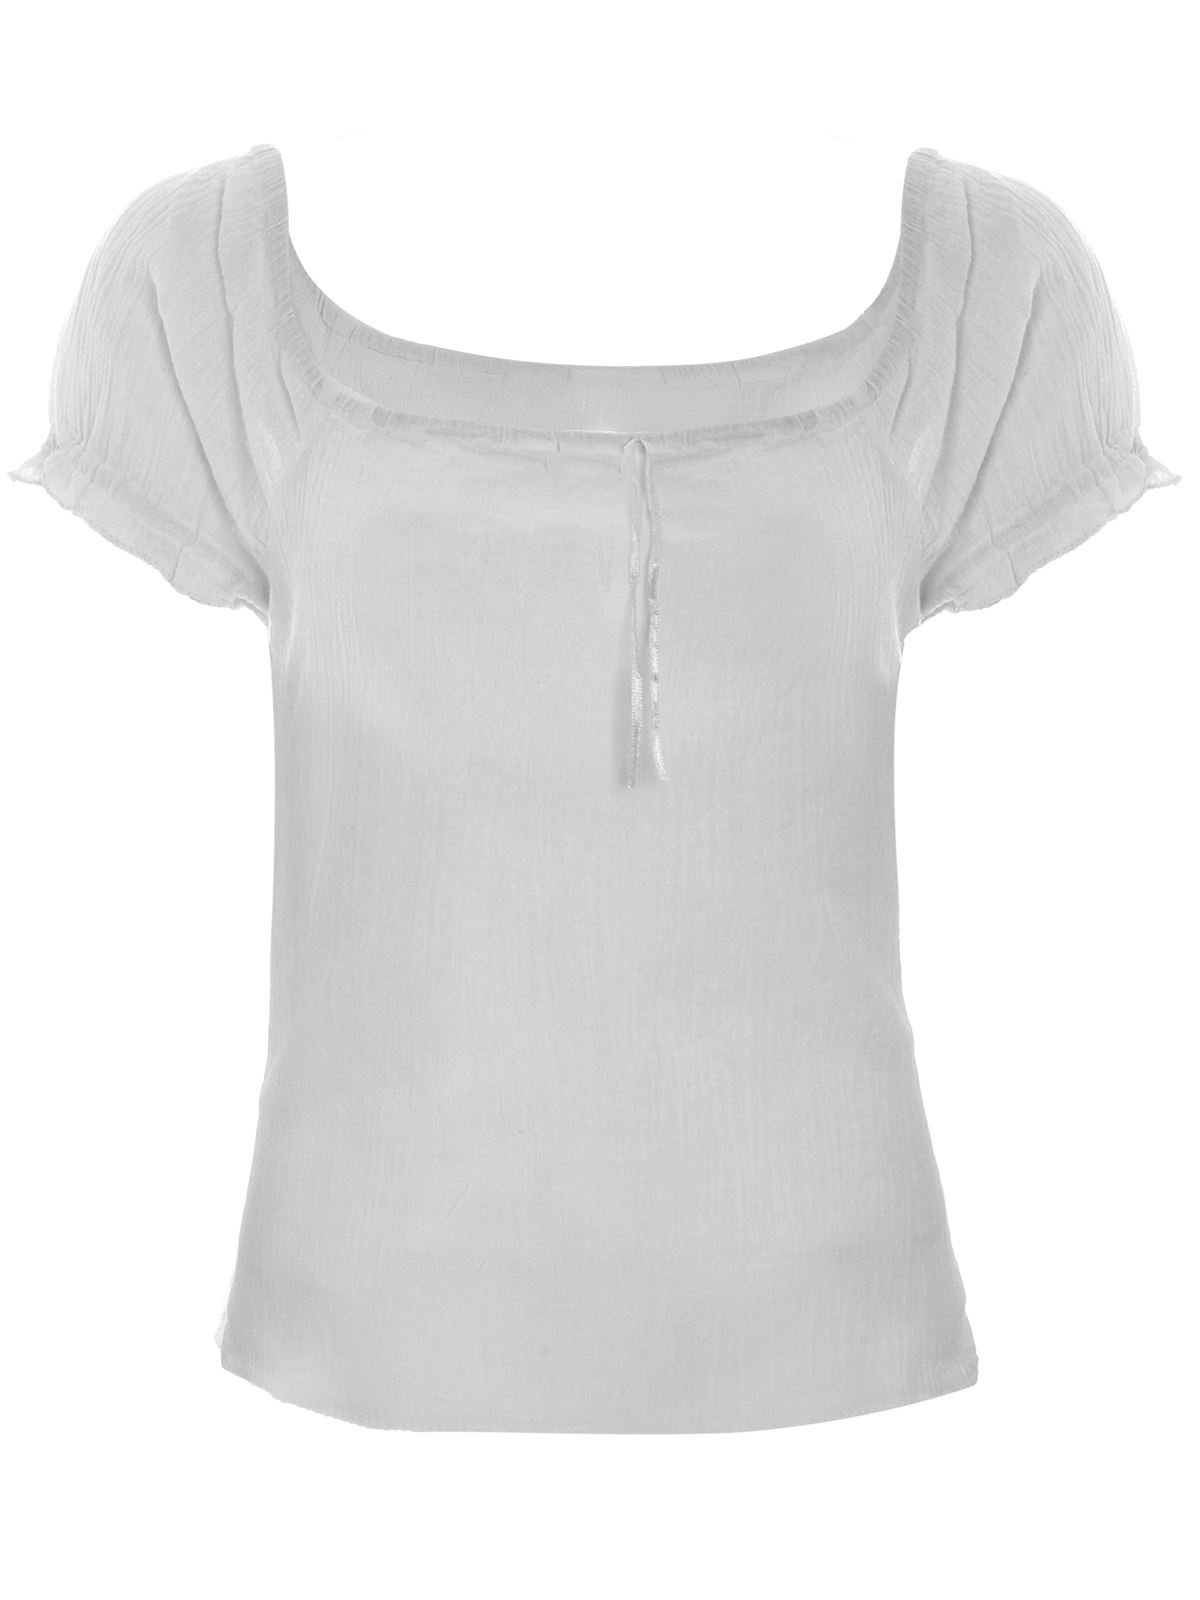 White Cotton Blouses For Summer Anlis